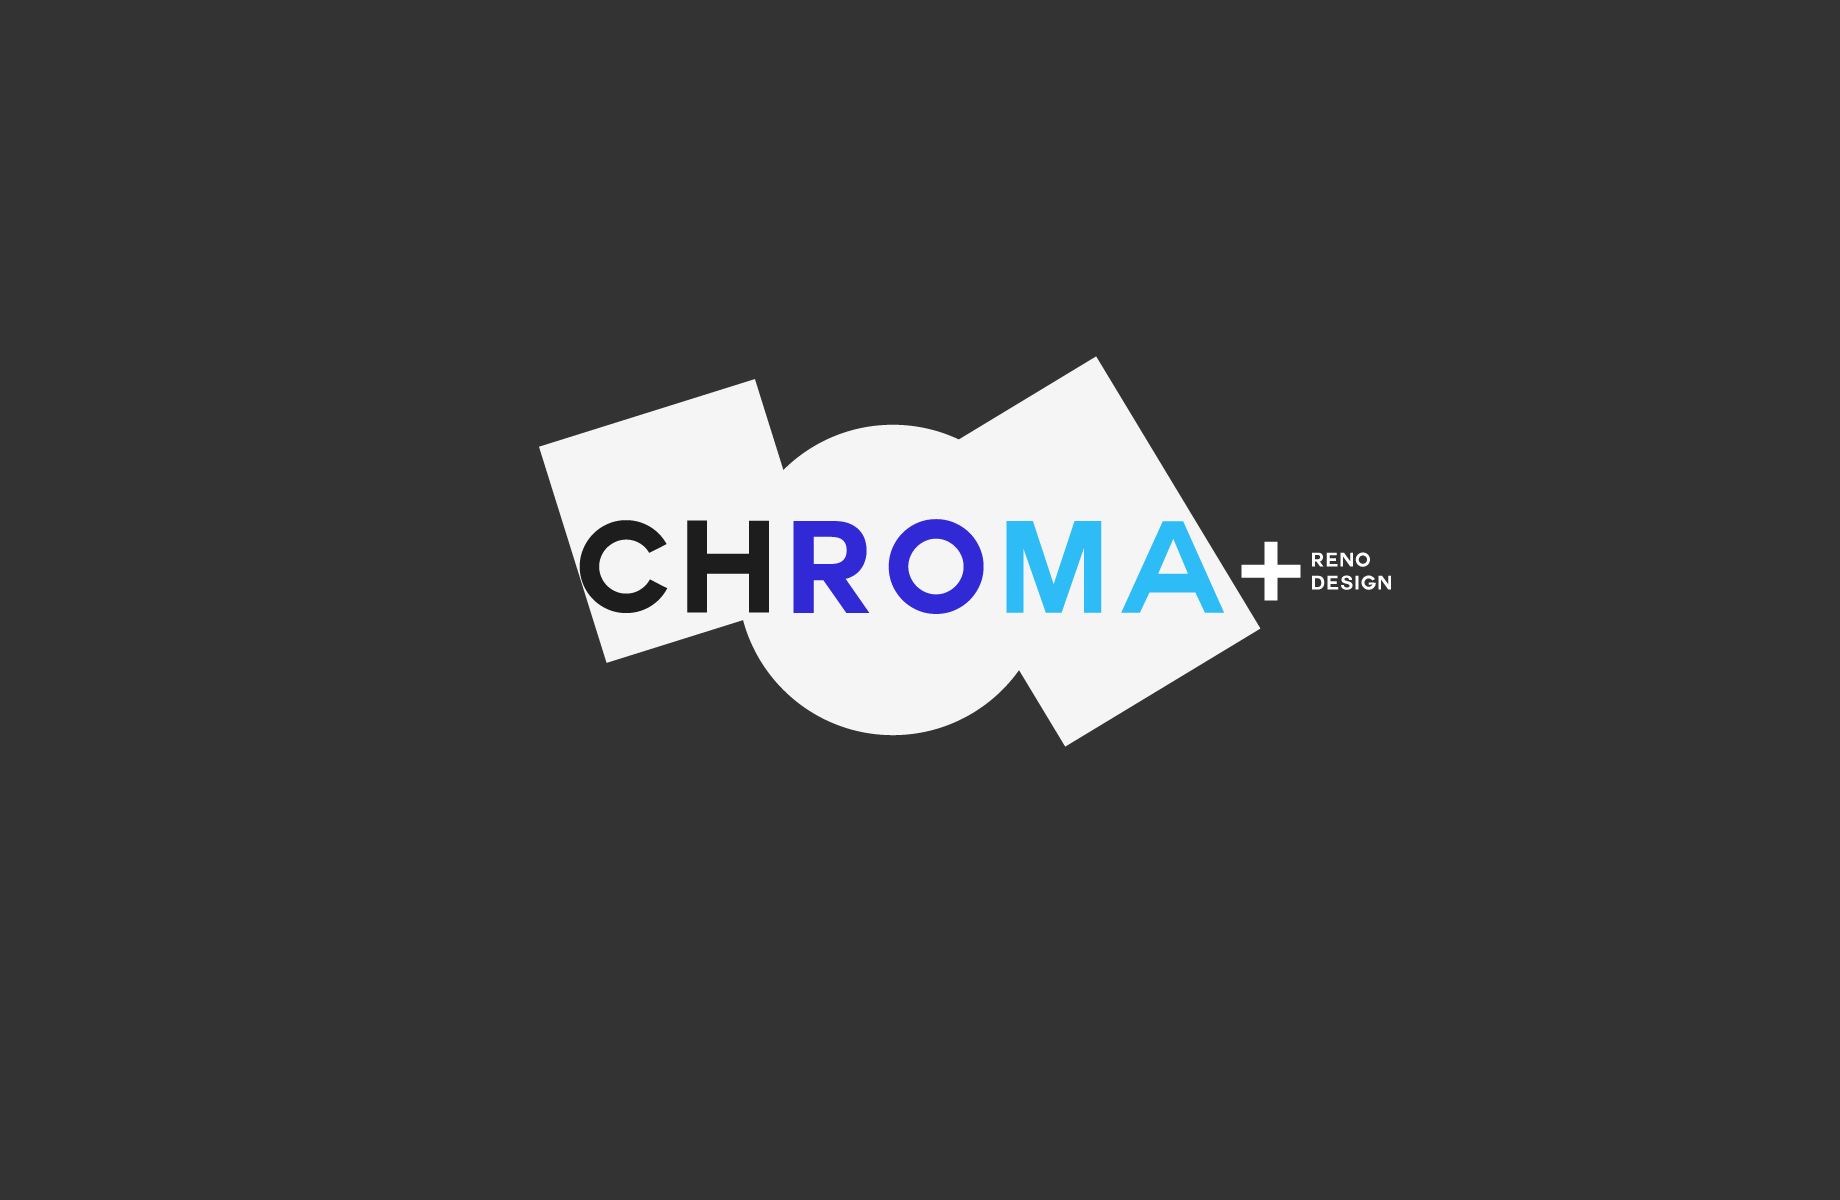 Logo Design by Jan Chua - Entry No. 298 in the Logo Design Contest Inspiring Logo Design for Chroma Reno+Design.